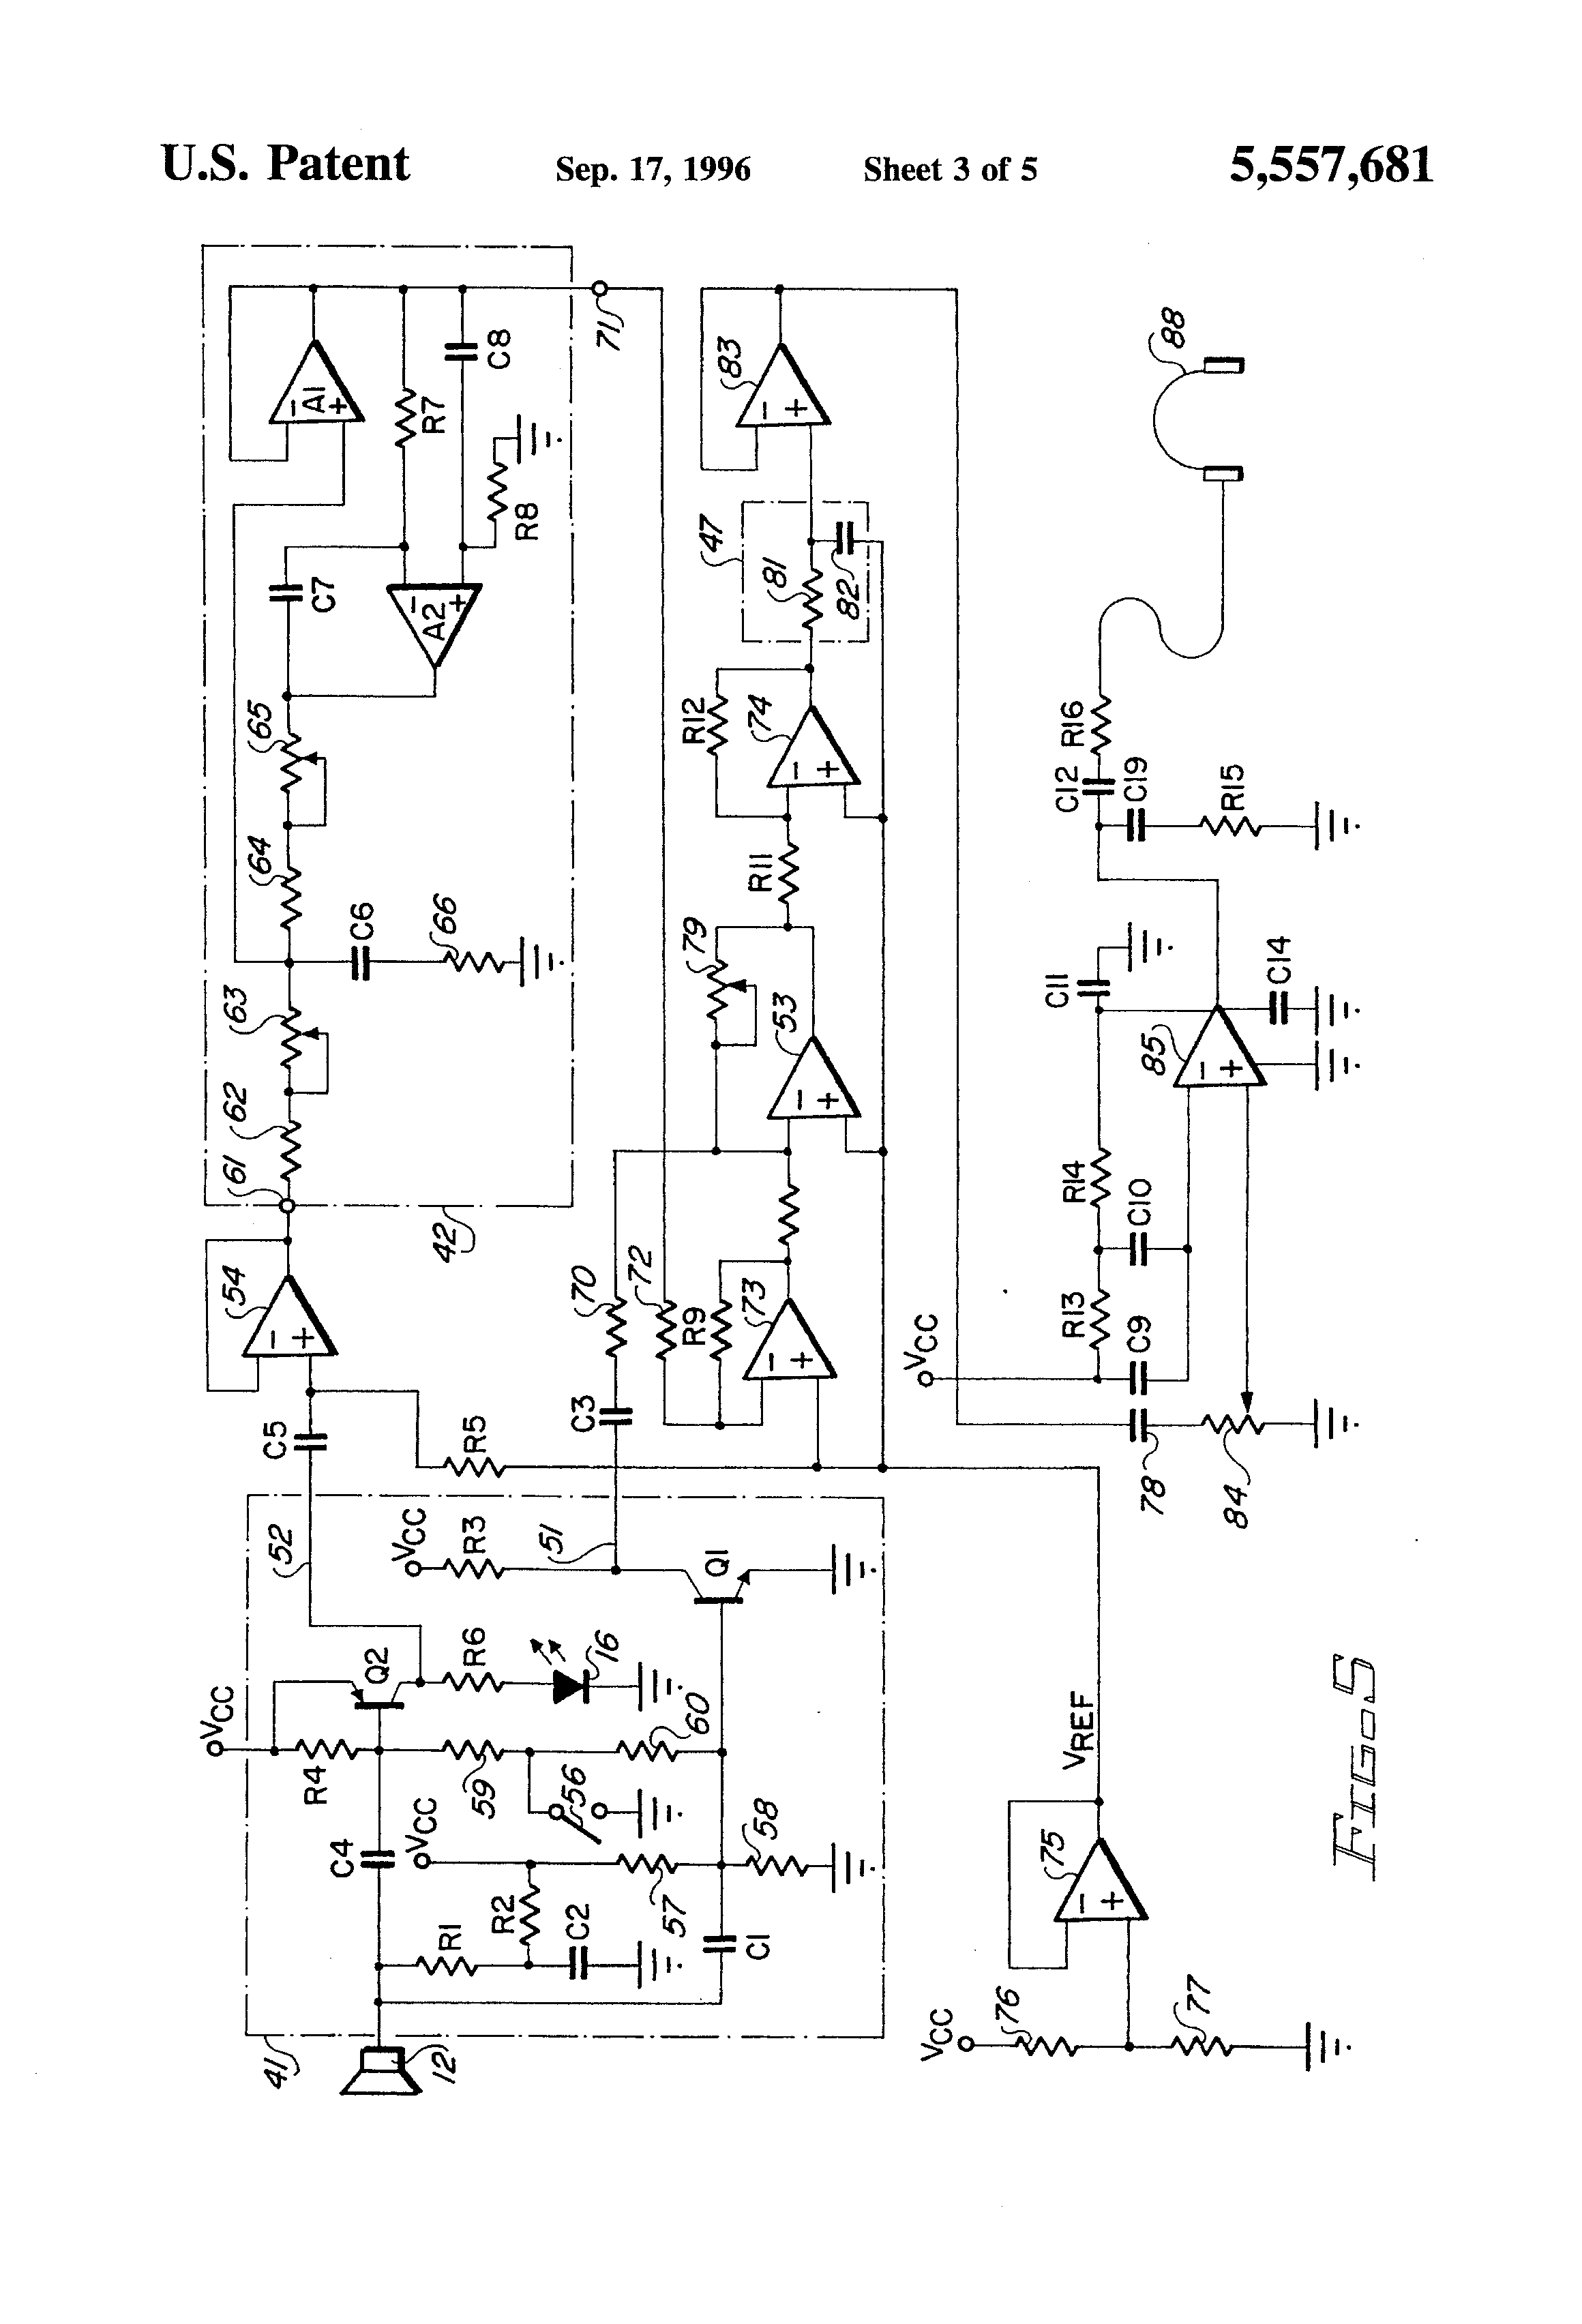 Wall Electrical Schematic Wiring on piping schematics, wire schematics, electrical engine, electrical diagrams, electrical schematic test, generator schematics, plumbing schematics, electrical panel schematic, electrical transformer schematics, high voltage schematics, basic circuit schematics, electronics schematics, electrical engineering projects for beginners, electrical switches schematics, industrial electrical schematics, home electrical schematics, engine schematics, electrician schematics, engineering schematics, electrical switch schematics,